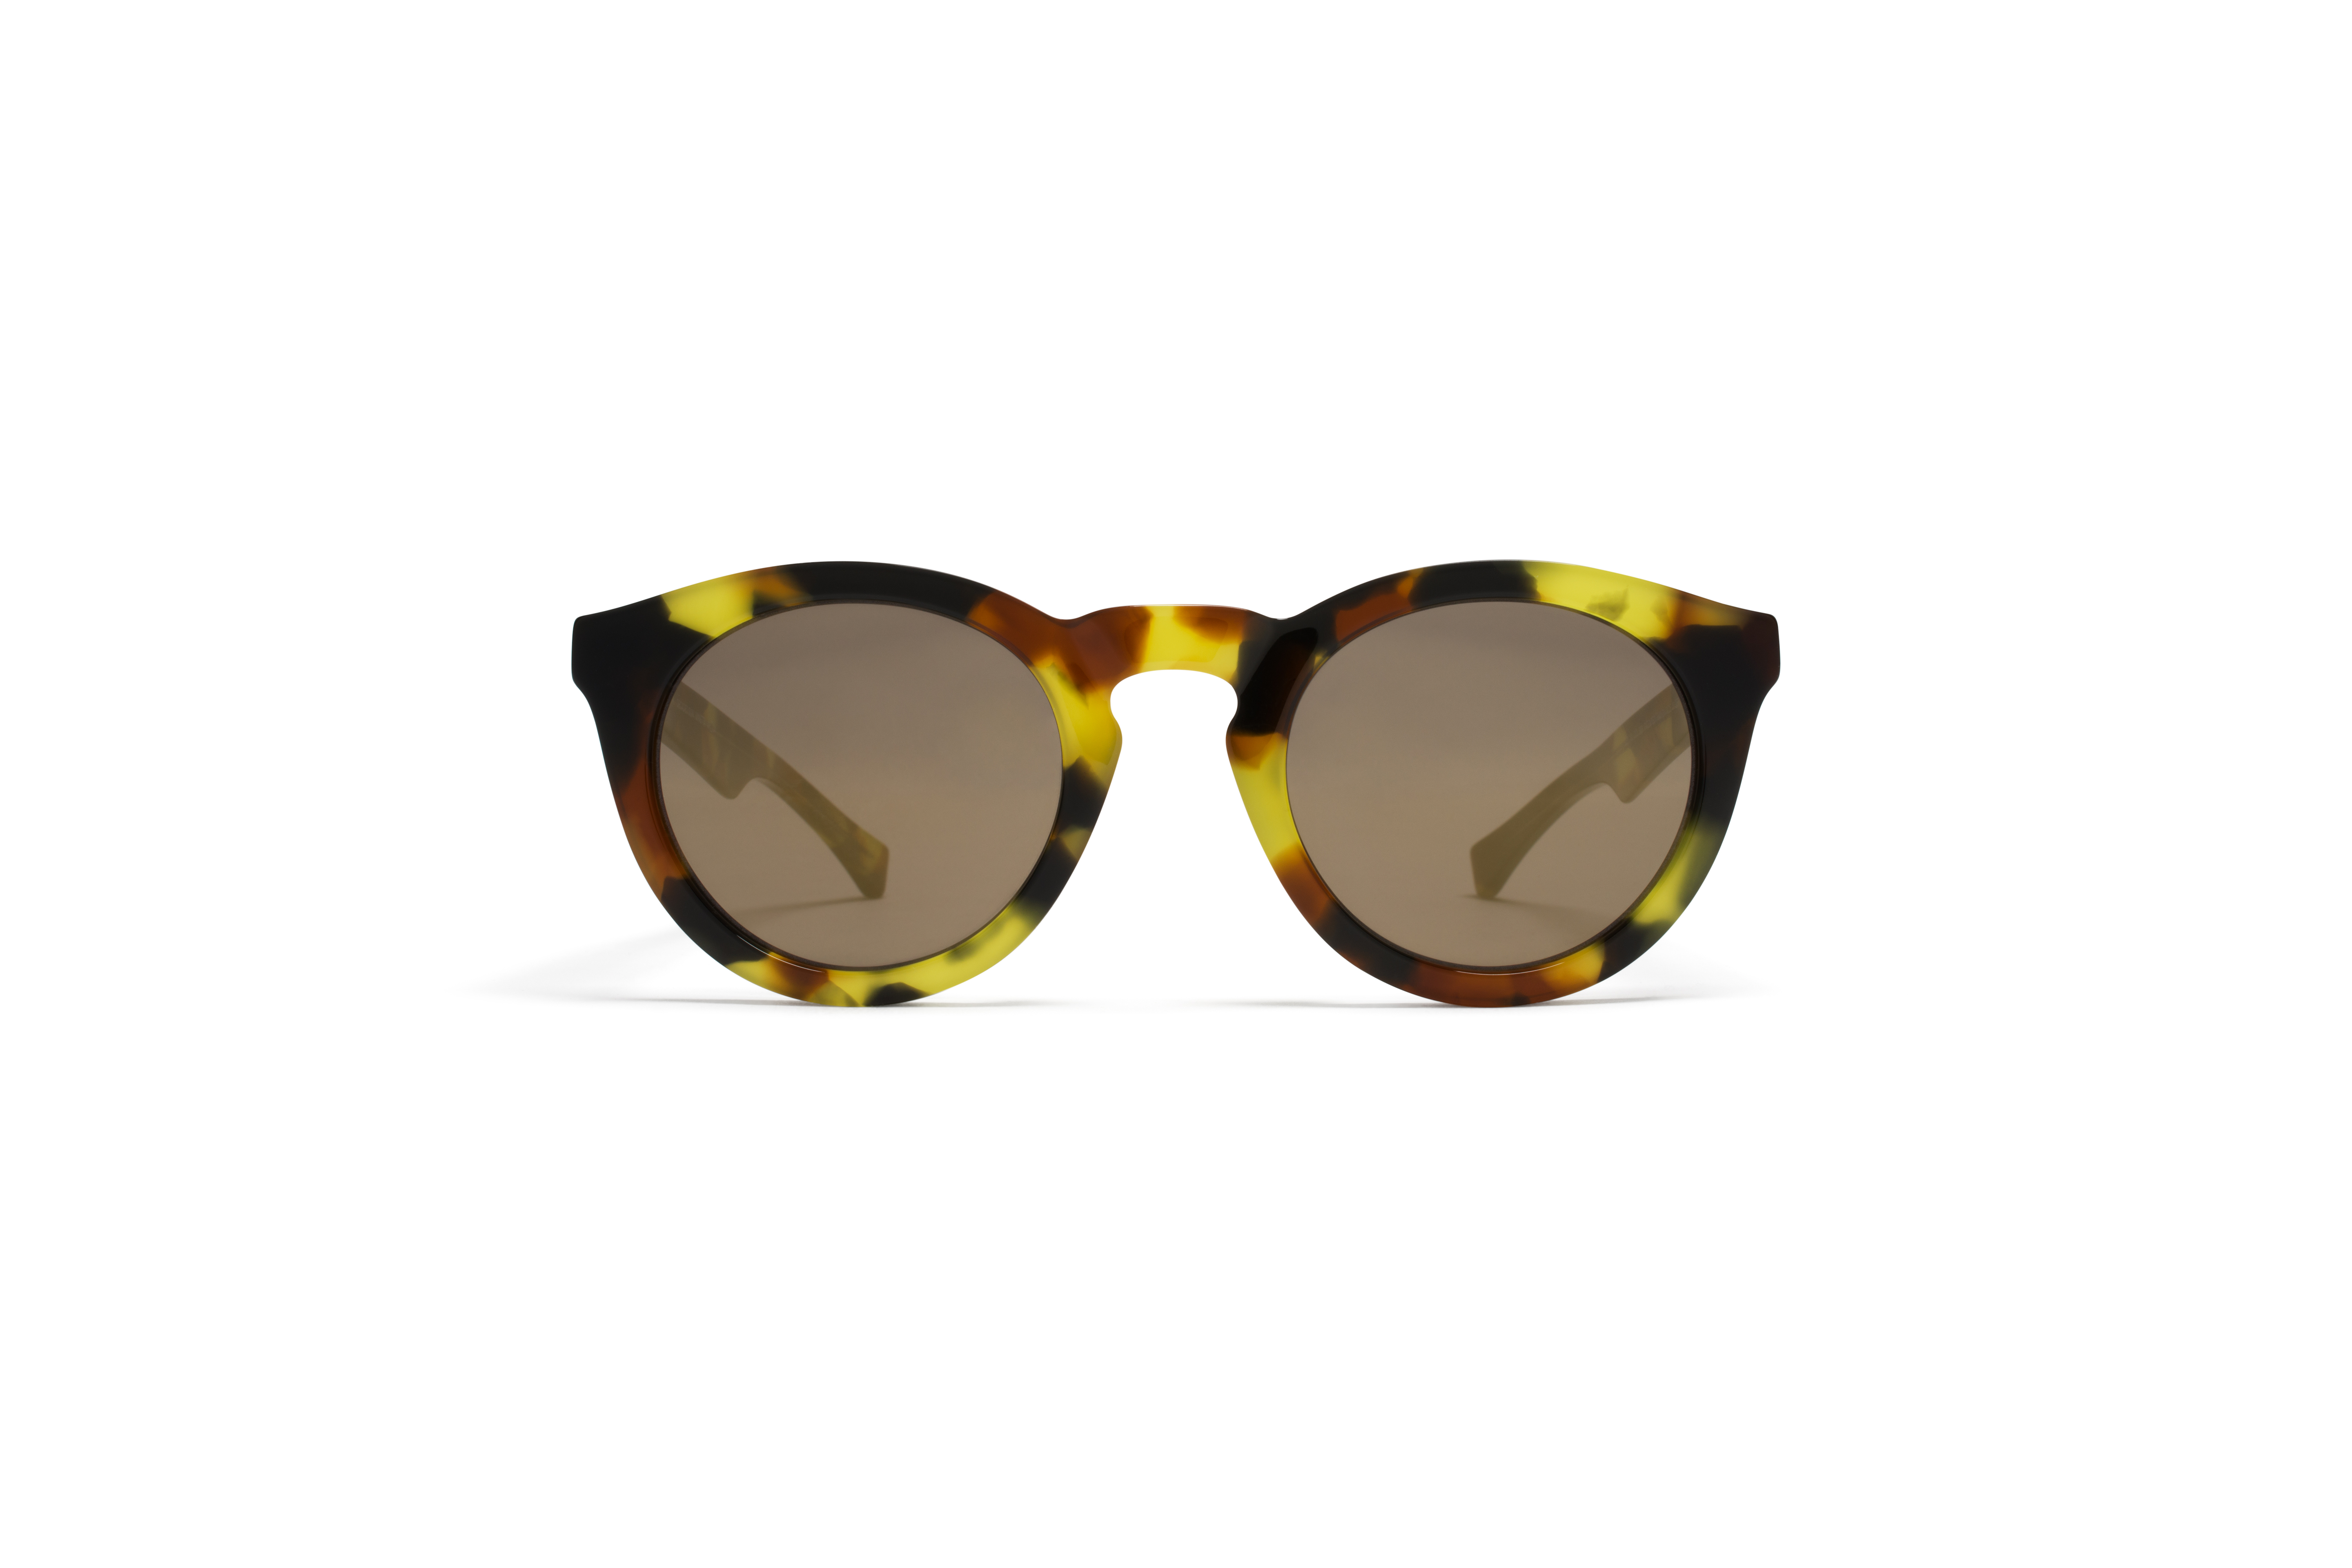 MYKITA Decades Sun Minetta Mardi Gras Brilliantgre5707b17fed087